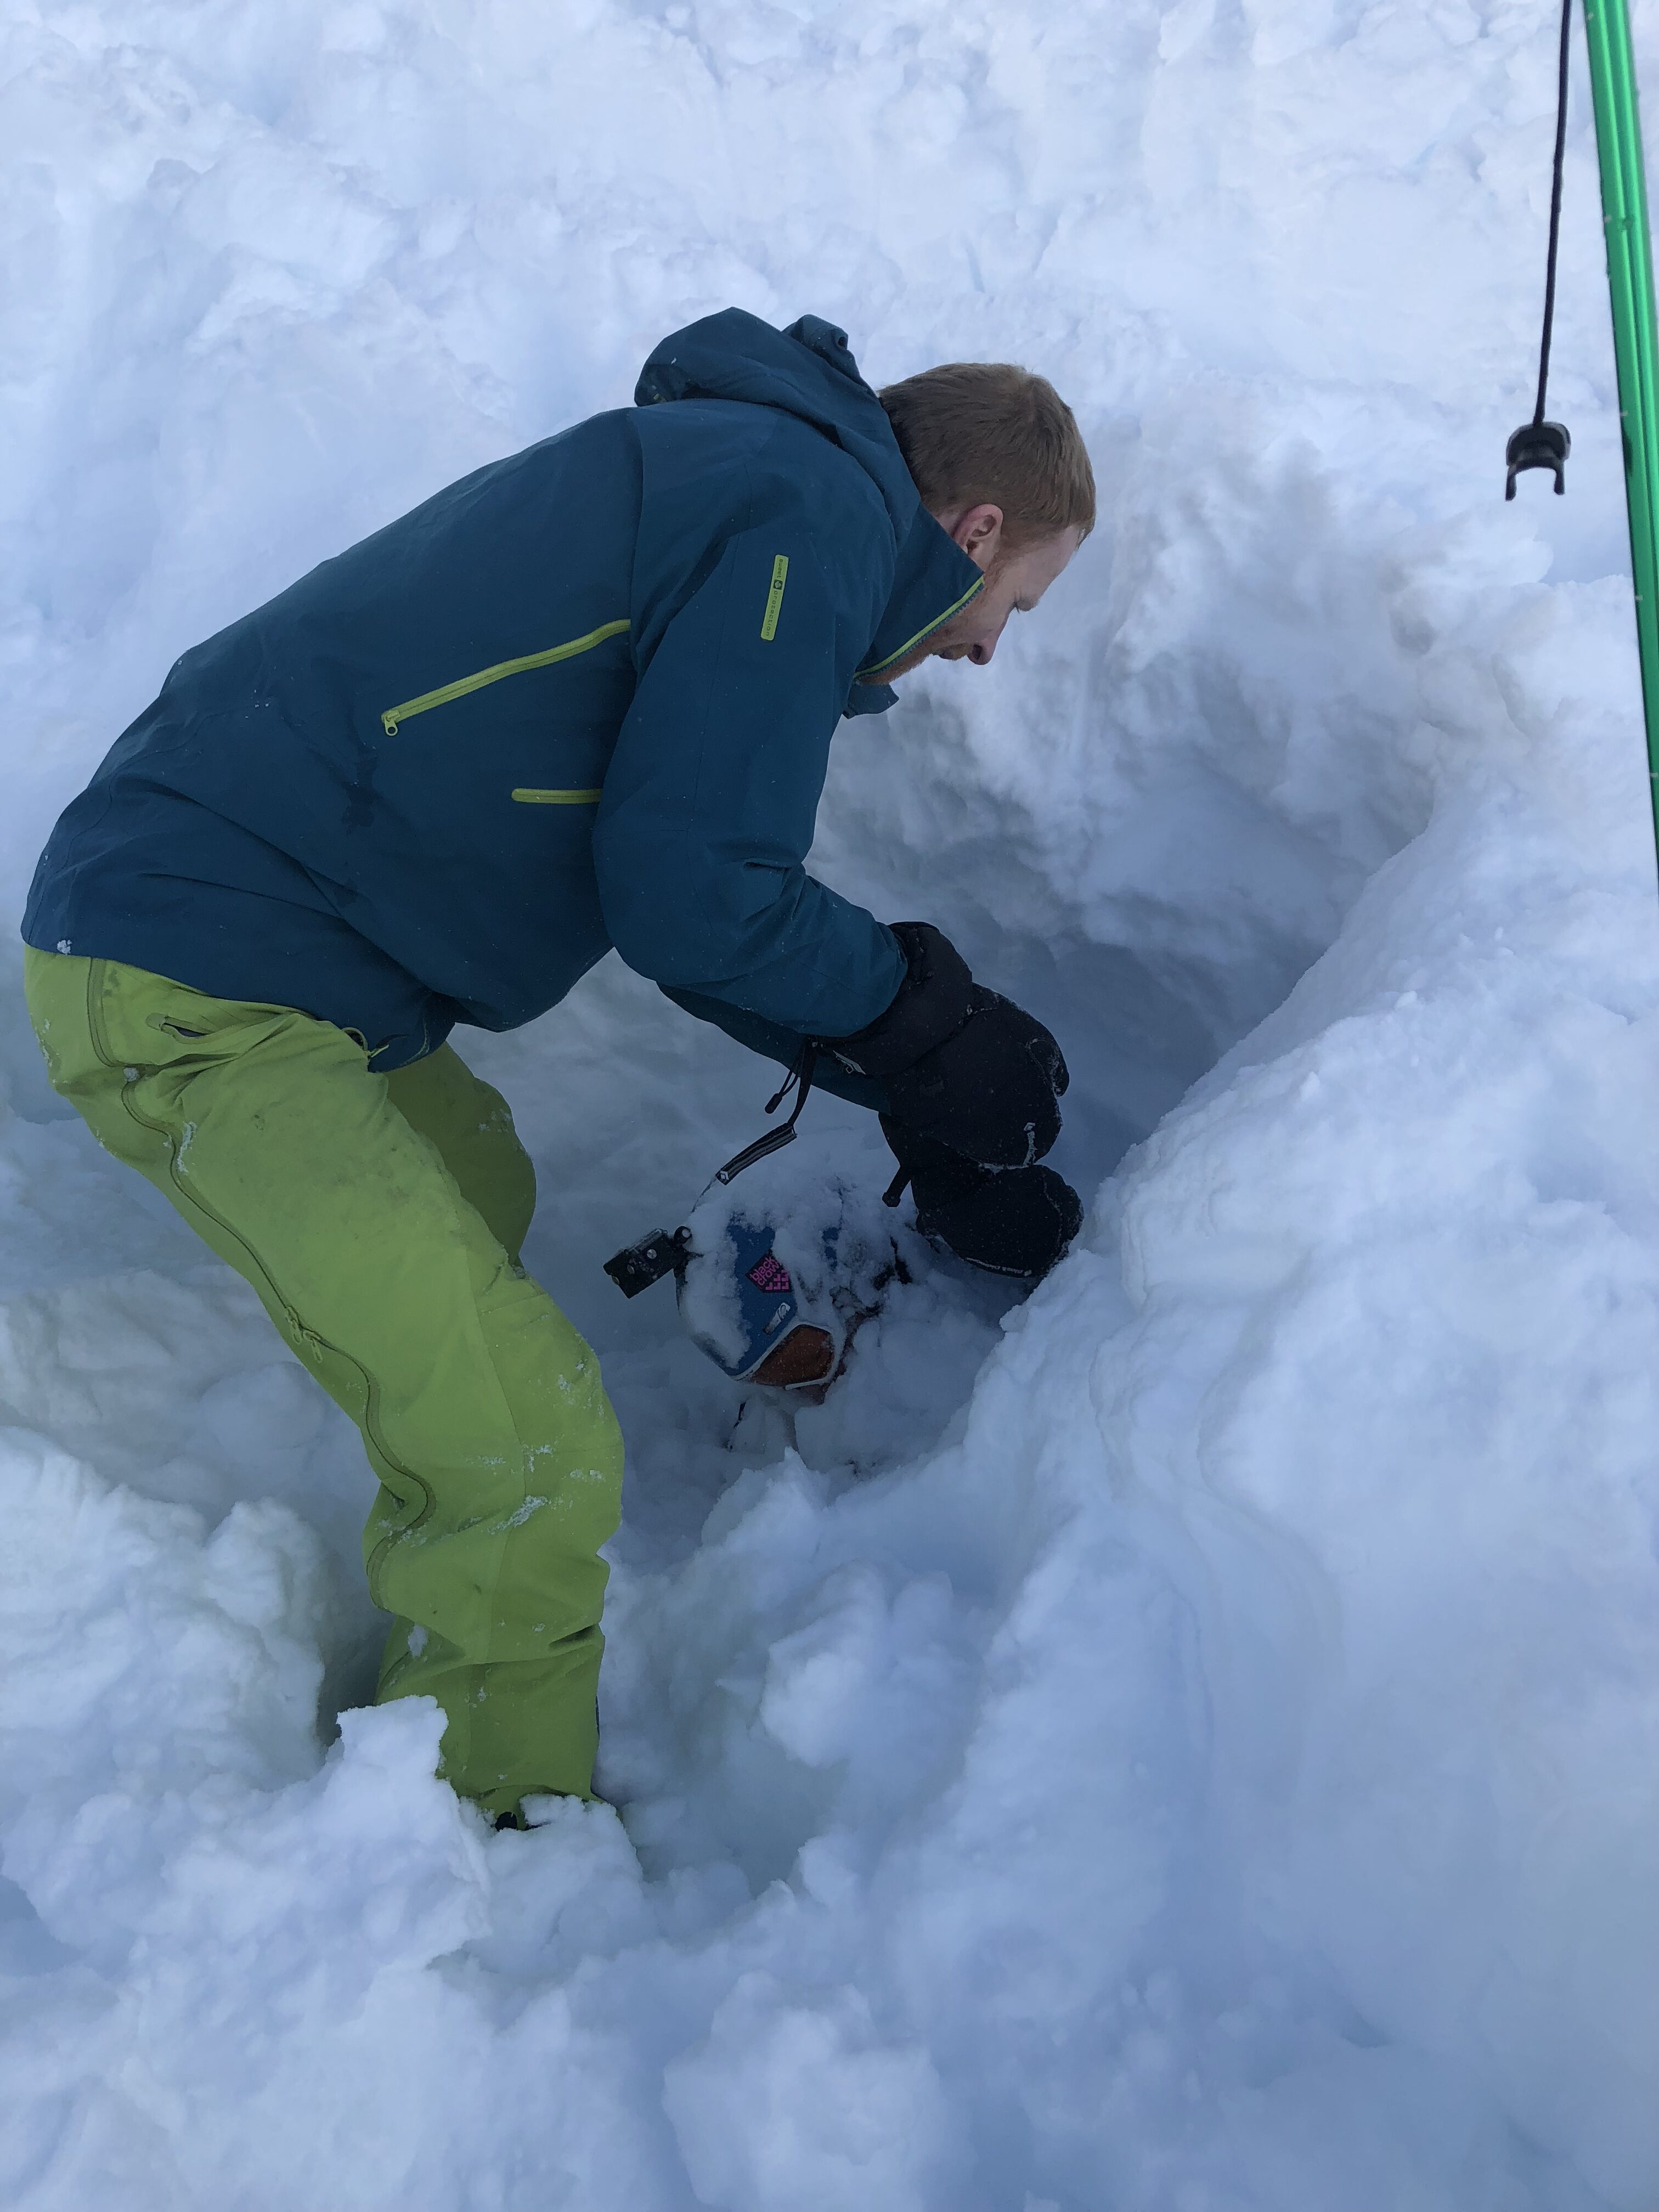 Dad digging son out of snow after he was buried